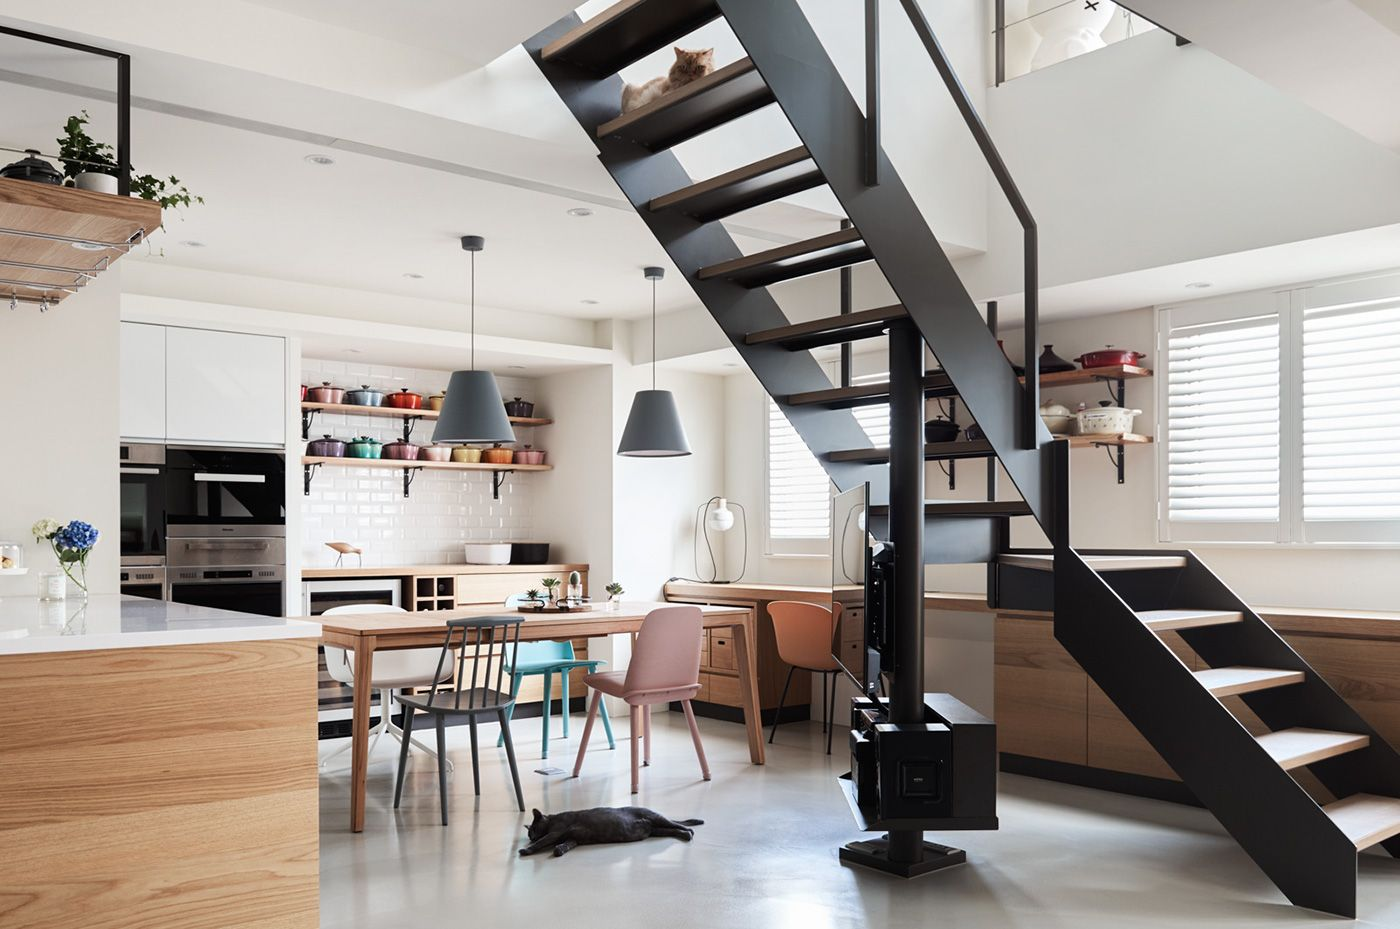 A Stylish Apartment With Cozy Spots for